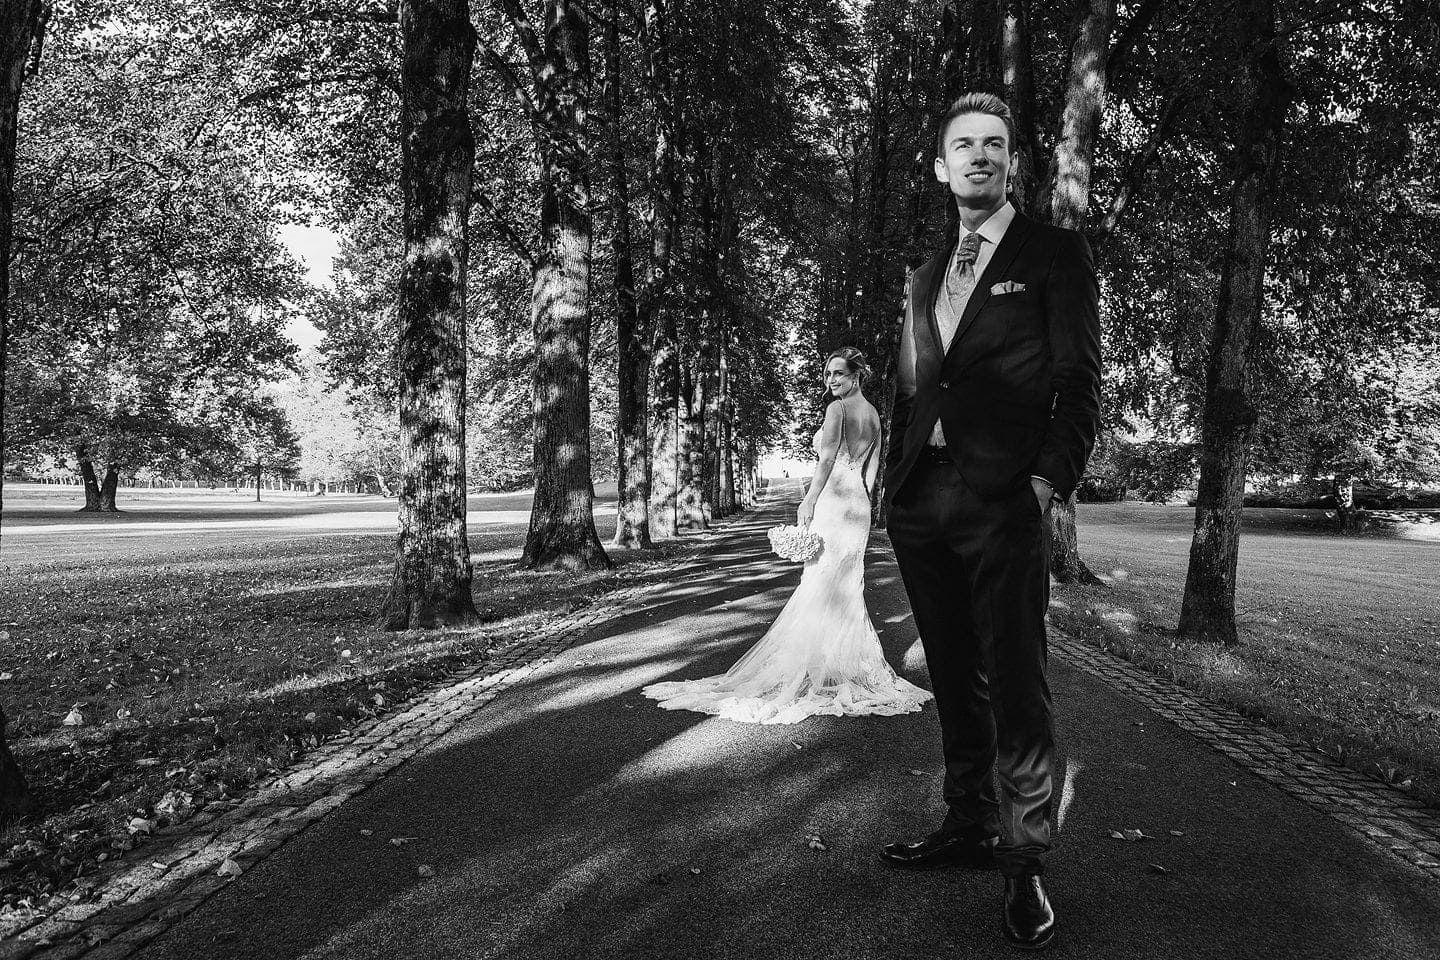 Best of wedding photography collection 2017 - by Aleks & Irena Kus 79